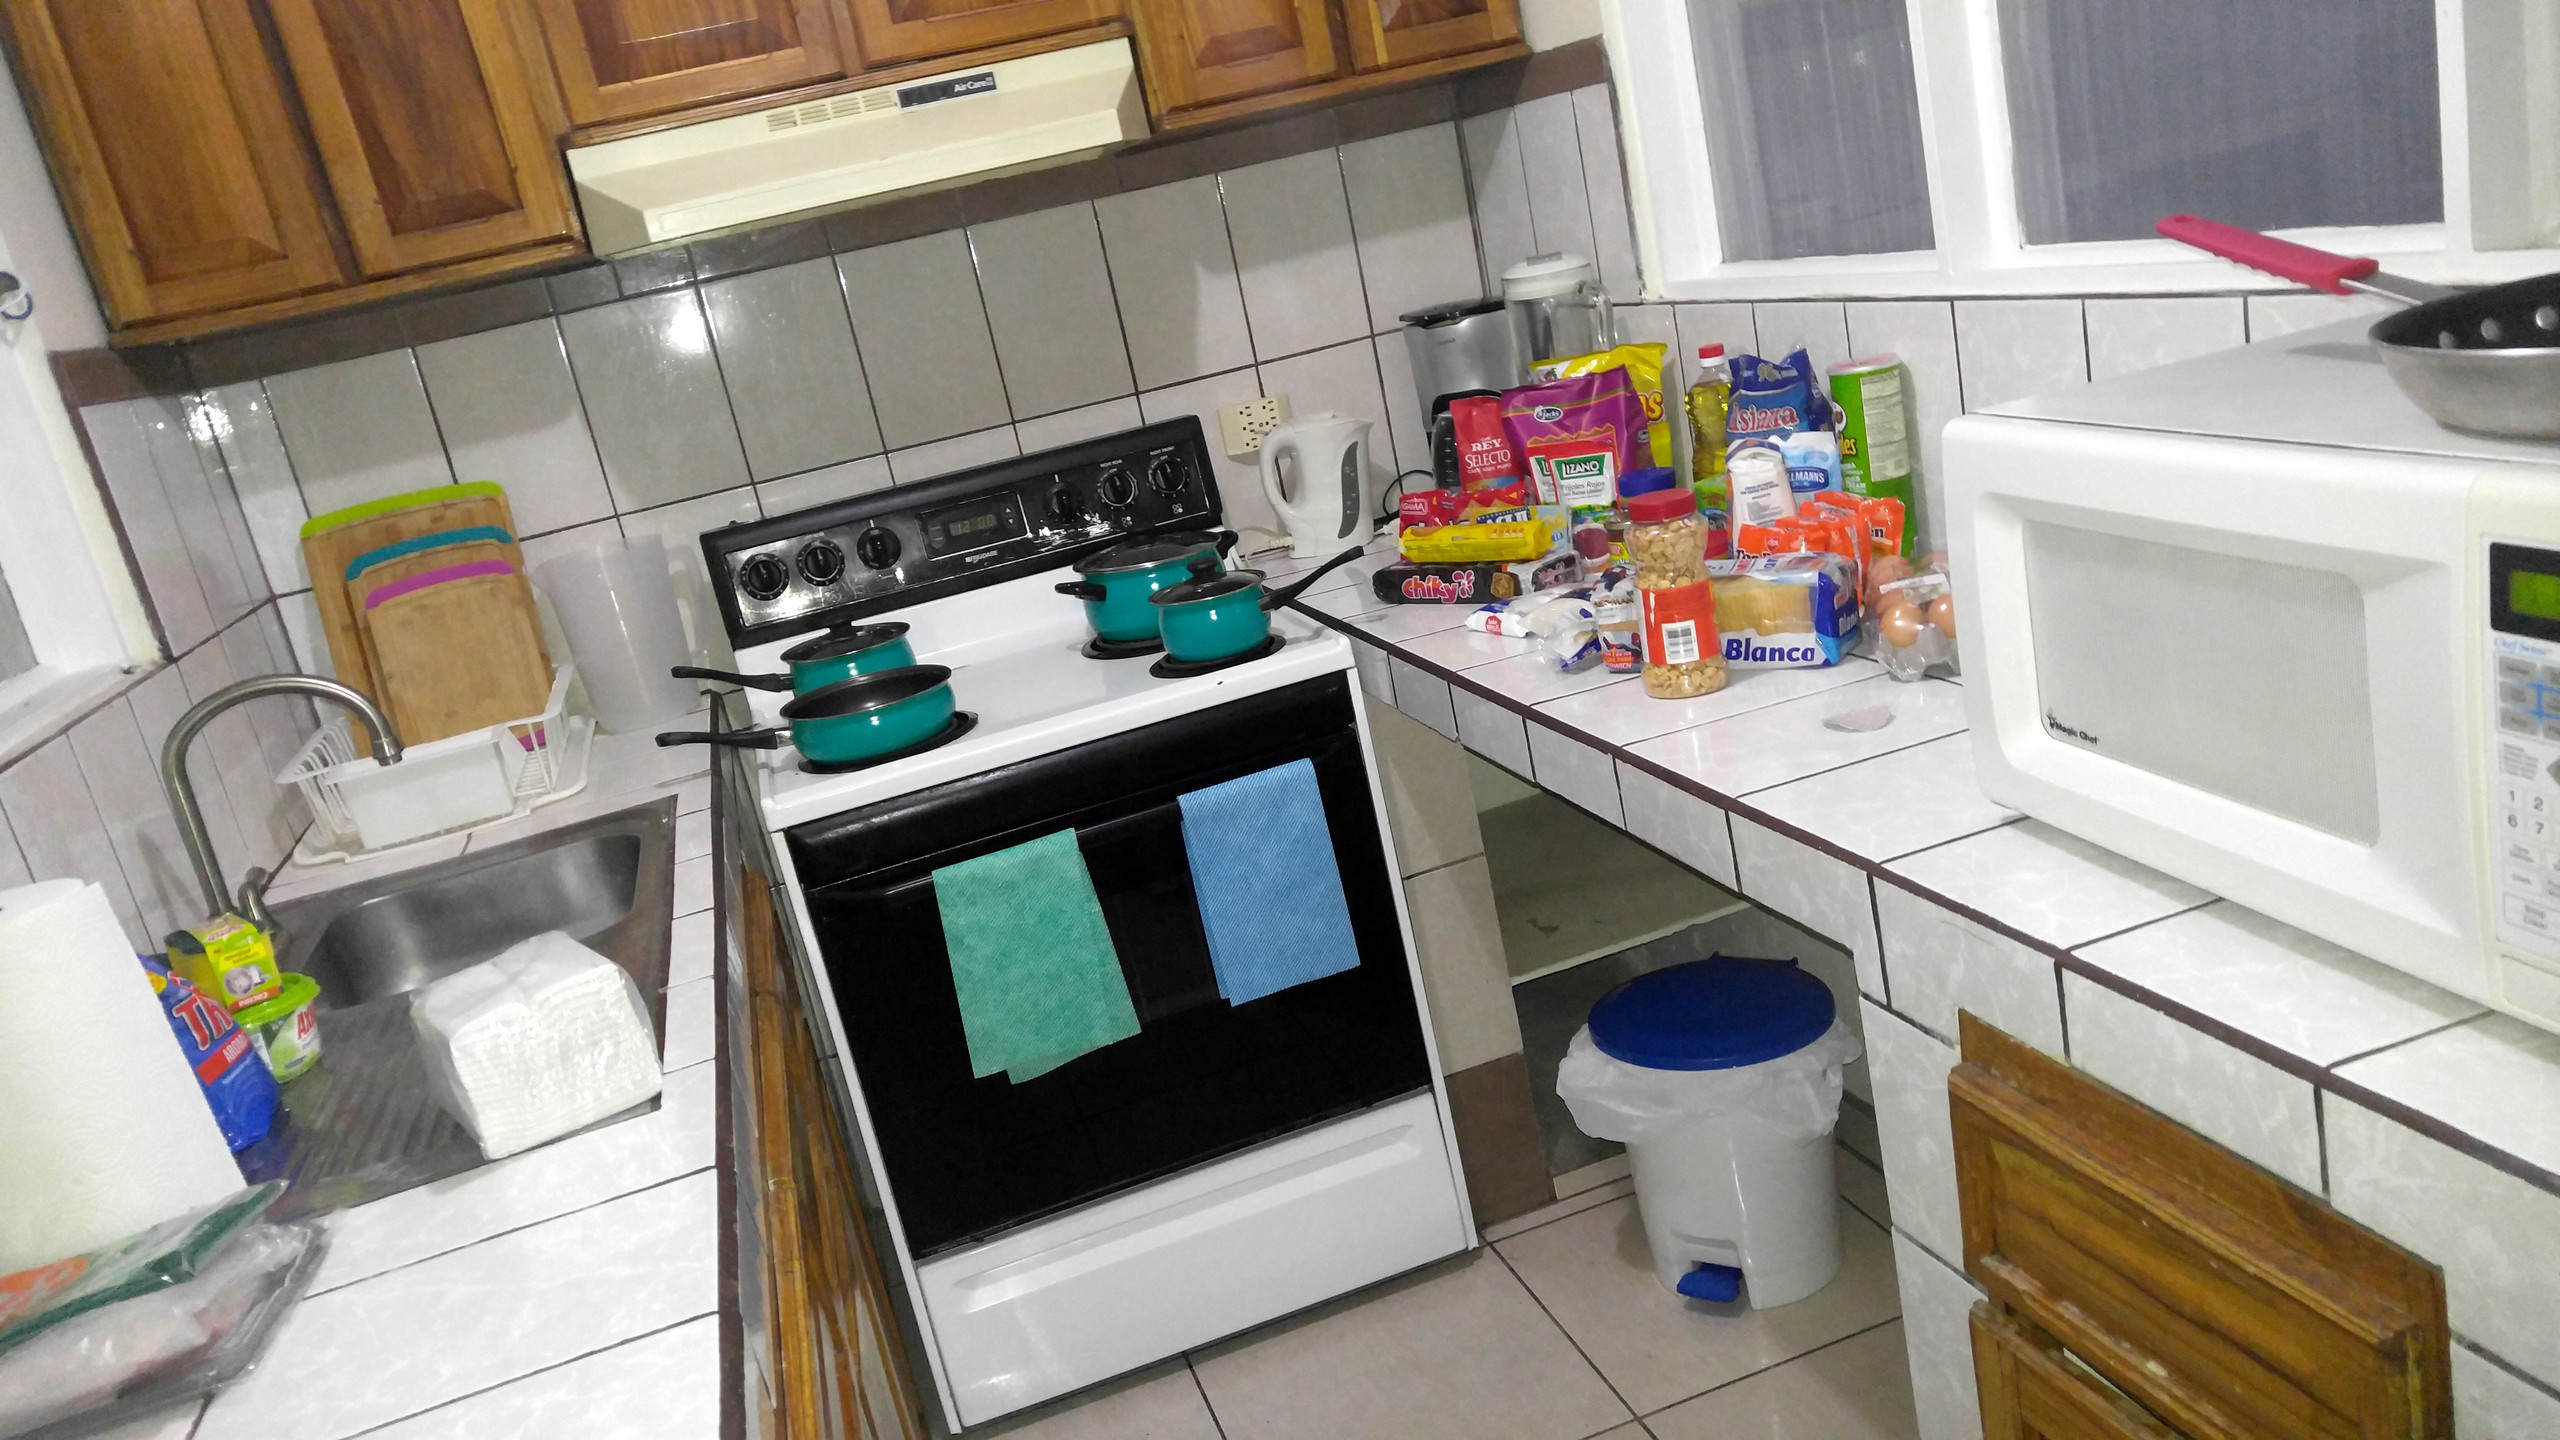 Our kitchen of welcome